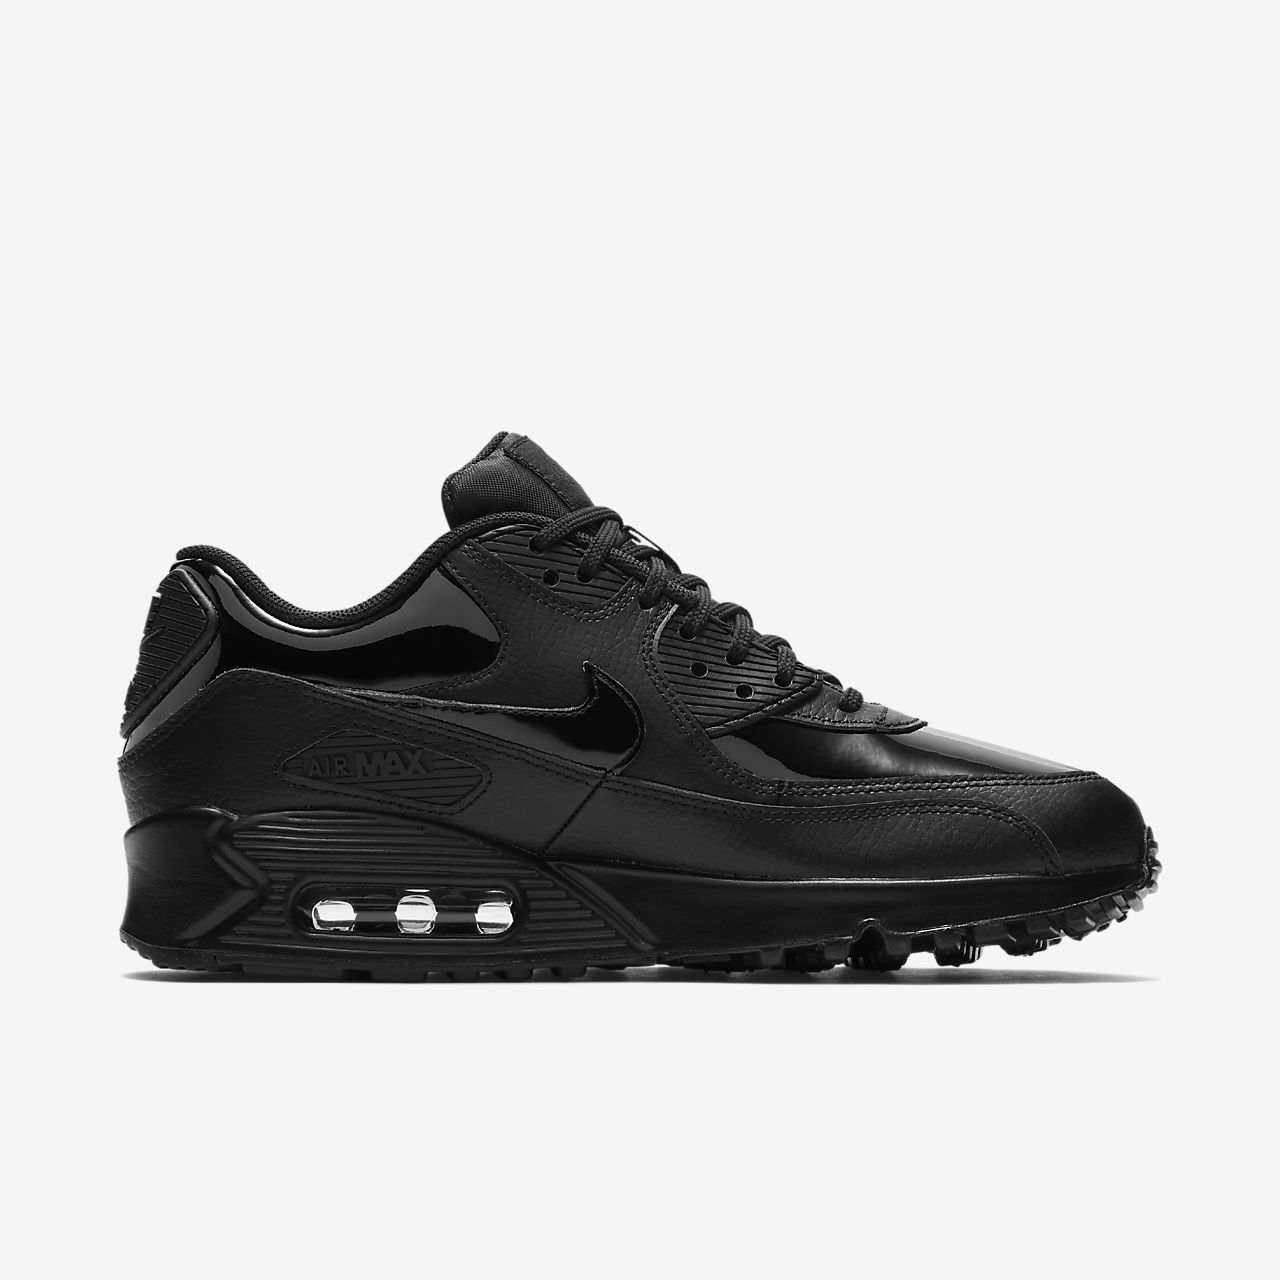 NIKE Air Max 90 LEATHER WOMEN Scarpe Donna Sneaker Classic Black 921304002